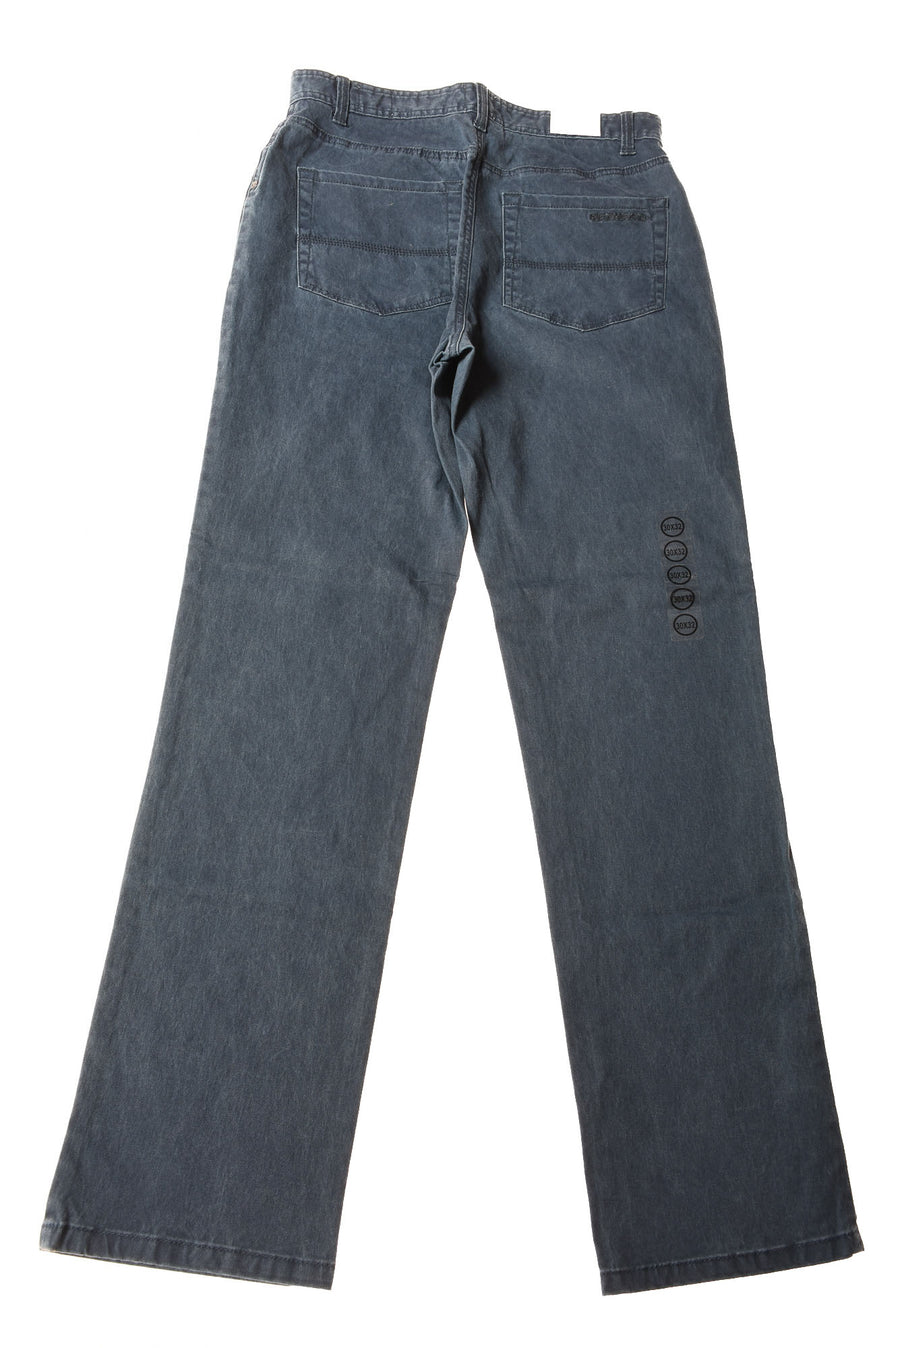 NEW Red Head Men's Jeans 30x32 Blue